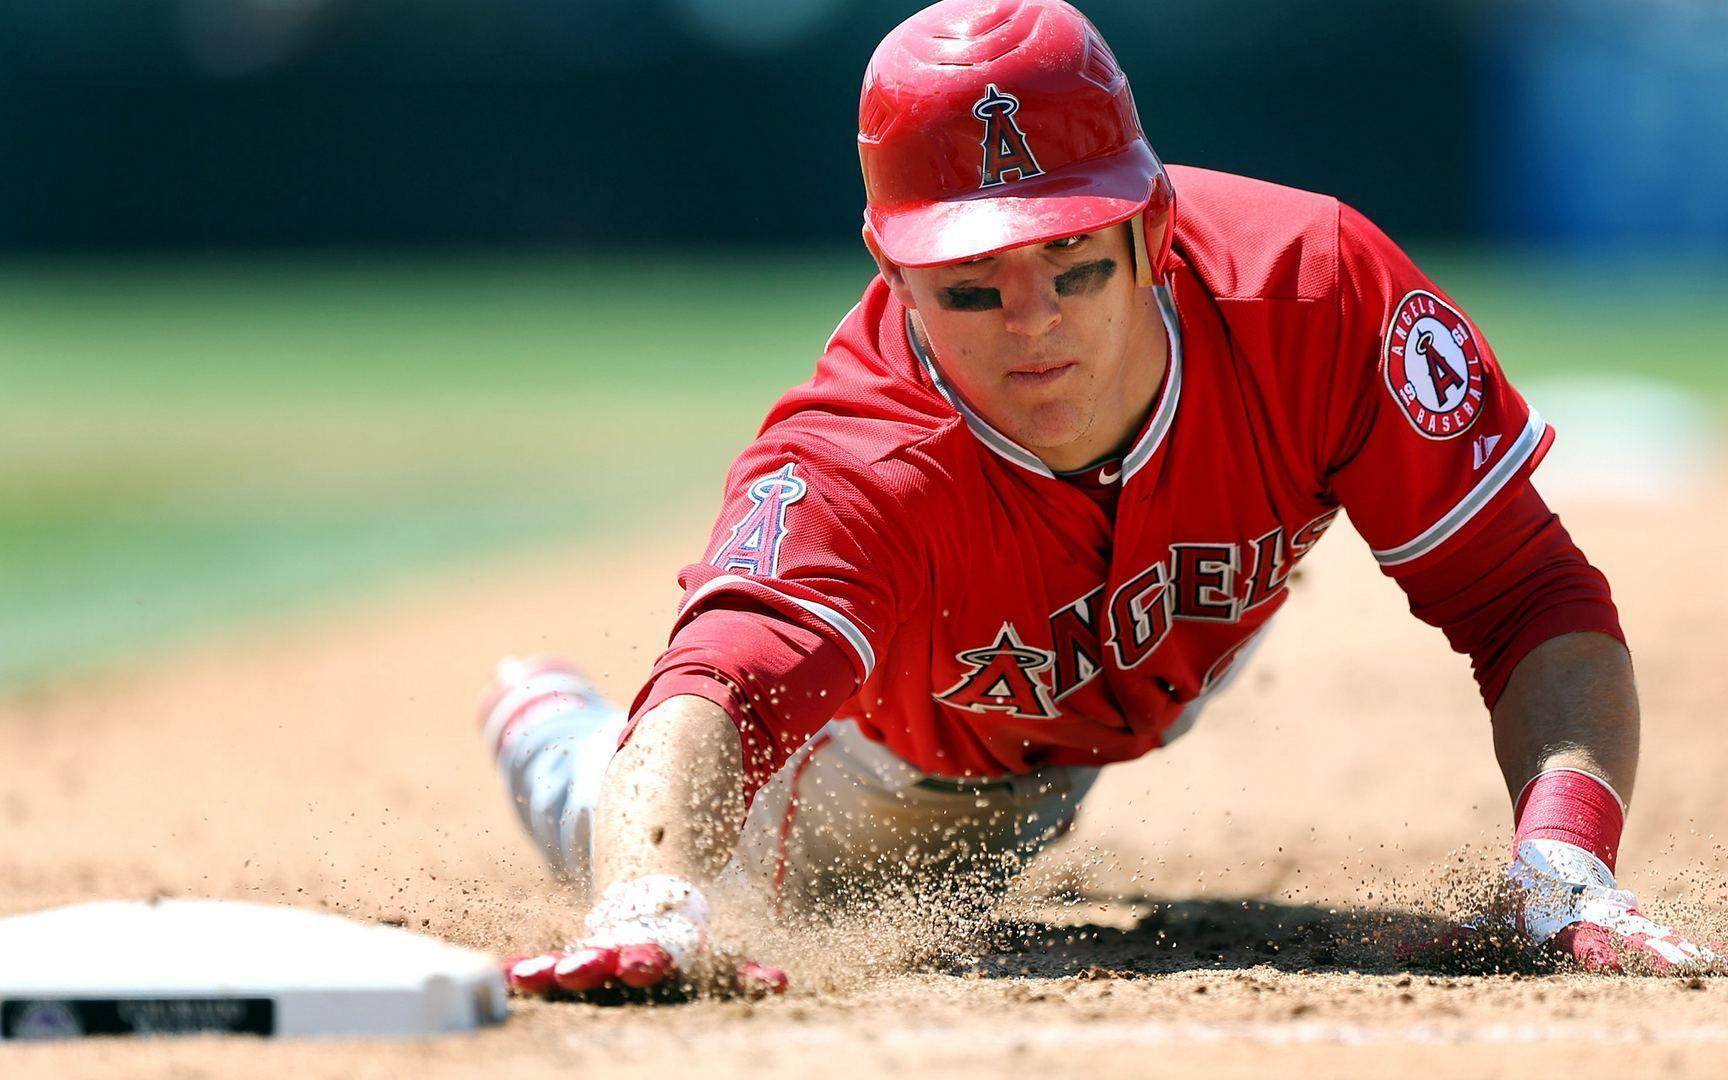 Mike Trout Wallpapers, 44 Mike Trout Android Compatible Photos